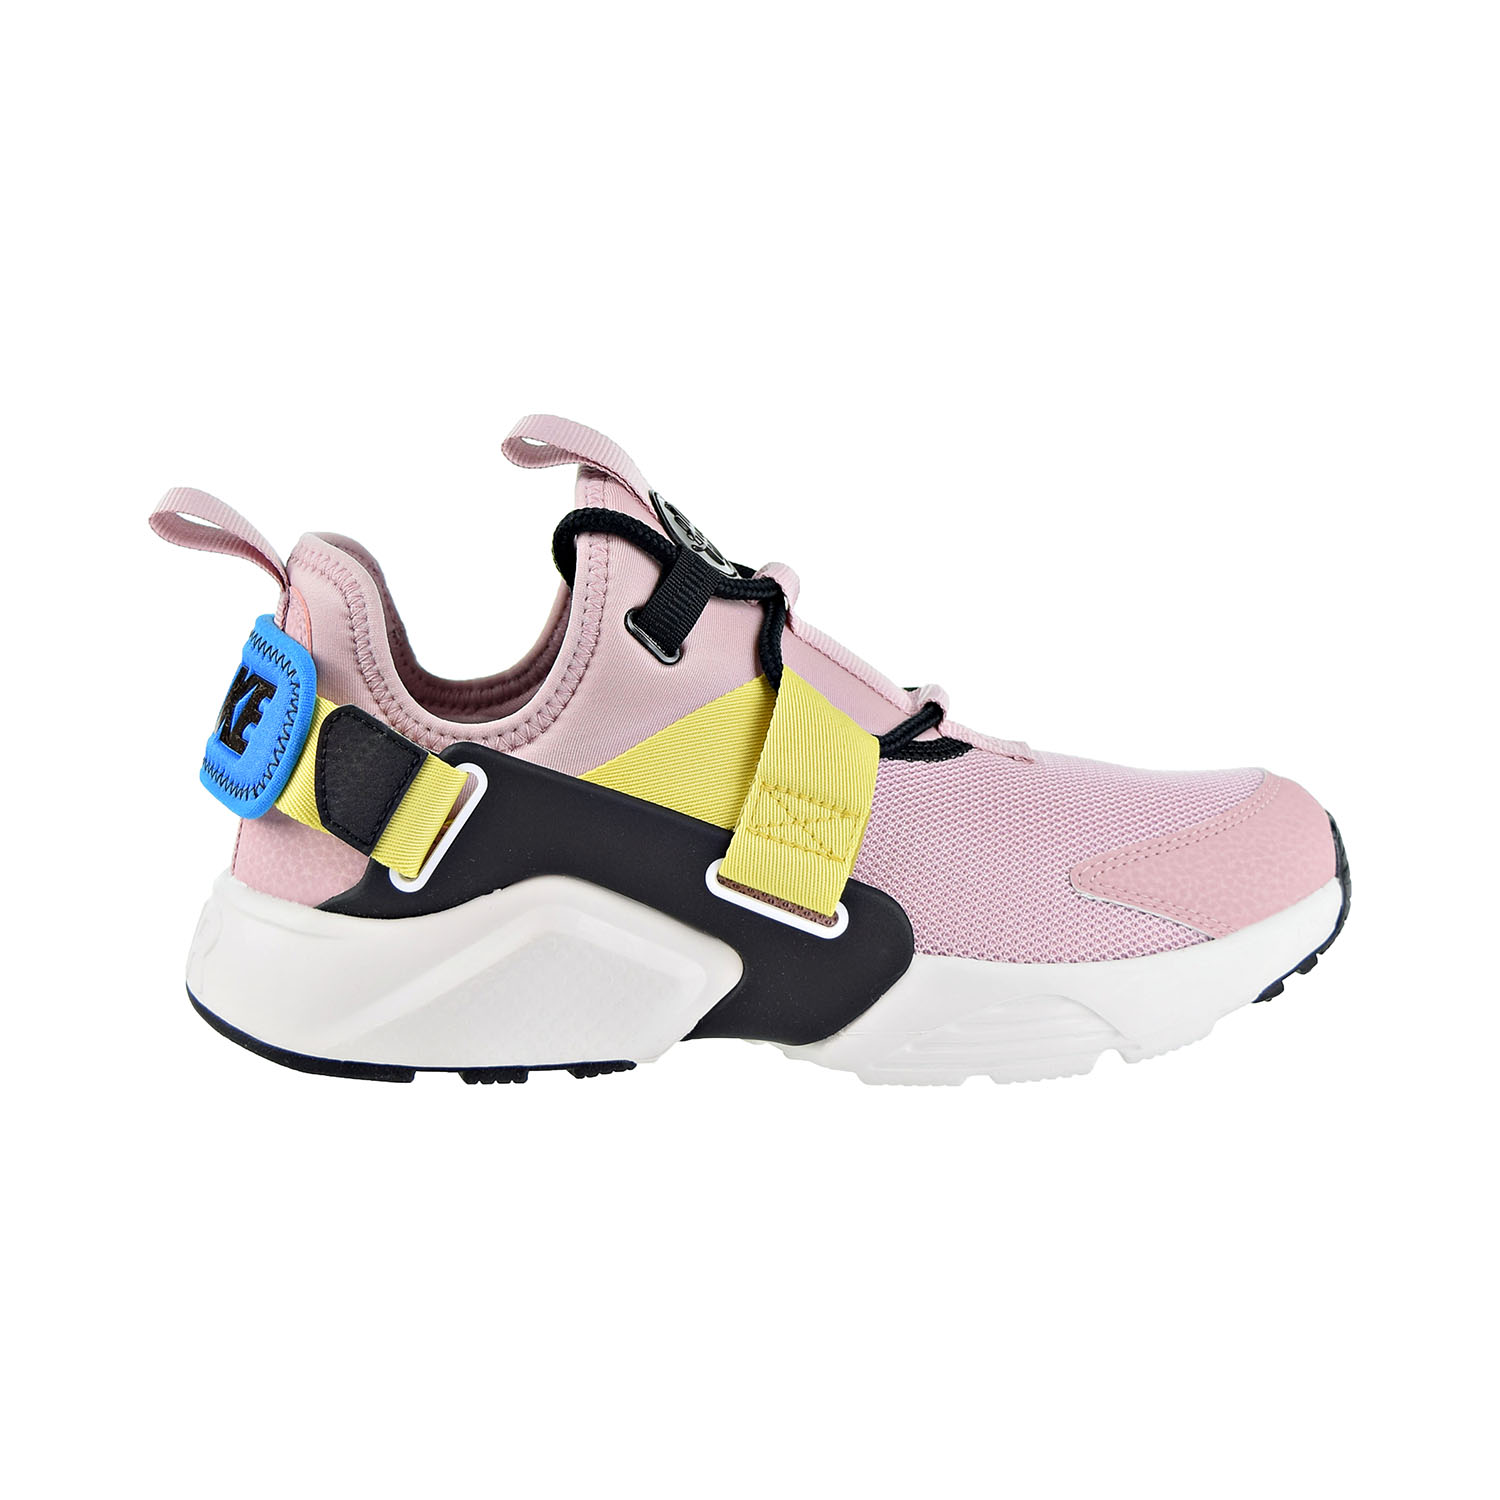 incredible prices wholesale online clearance prices Nike Air Huarache City Low Women's Shoes Plum Chalk-Black-White ...